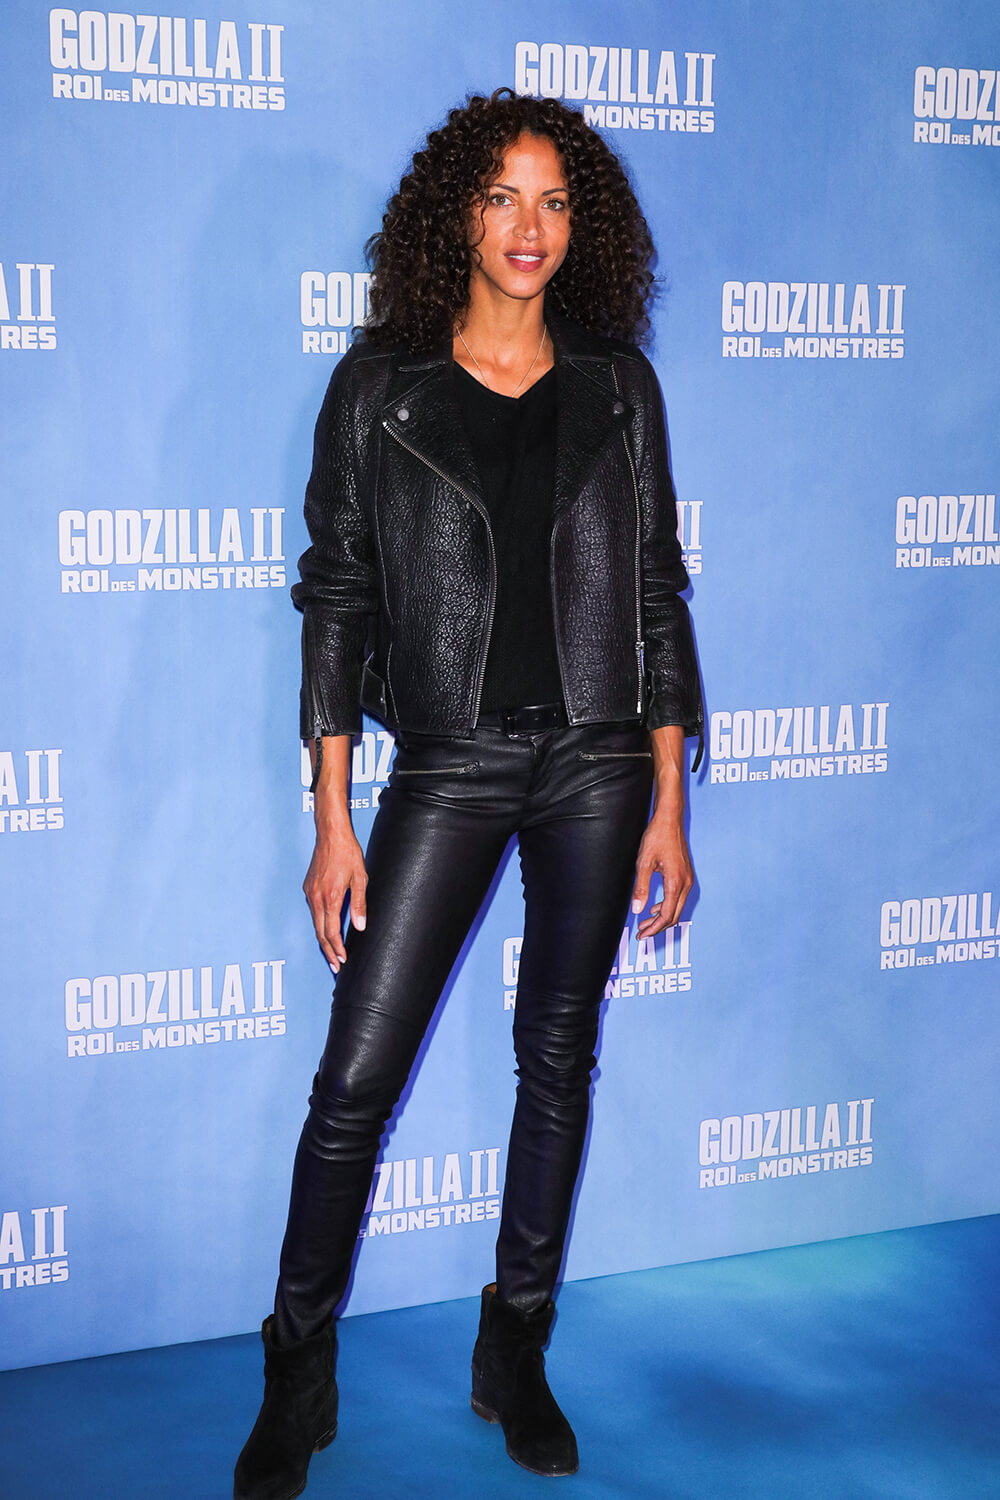 Noemie Lenoir attending the Godzilla II: King Of The Monsters premiere